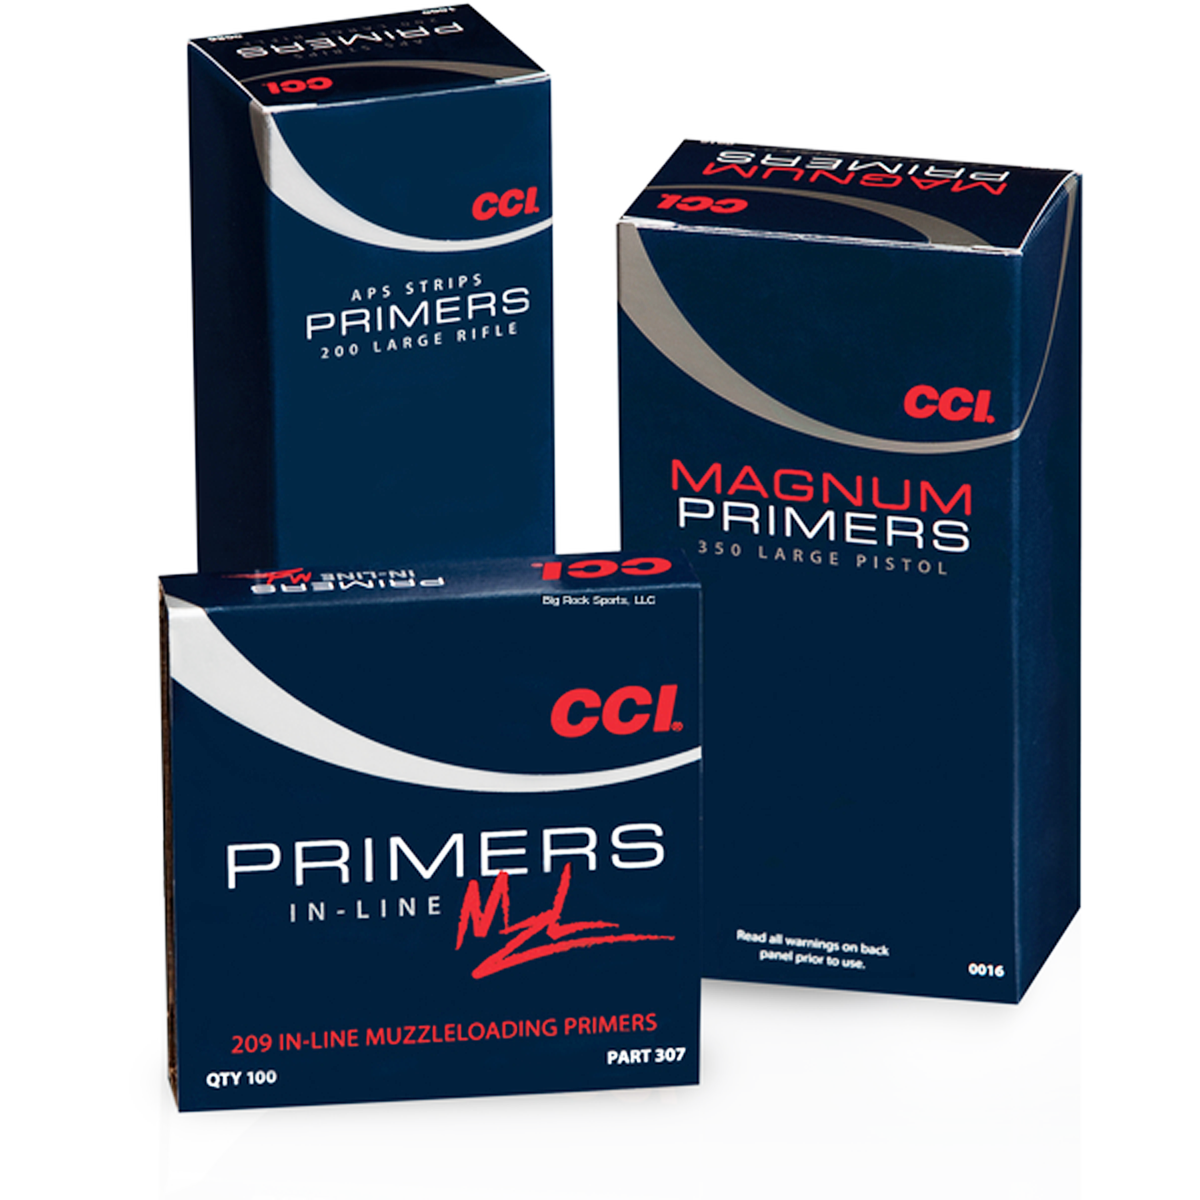 CCI Pistol Primers - IN STORE ONLY